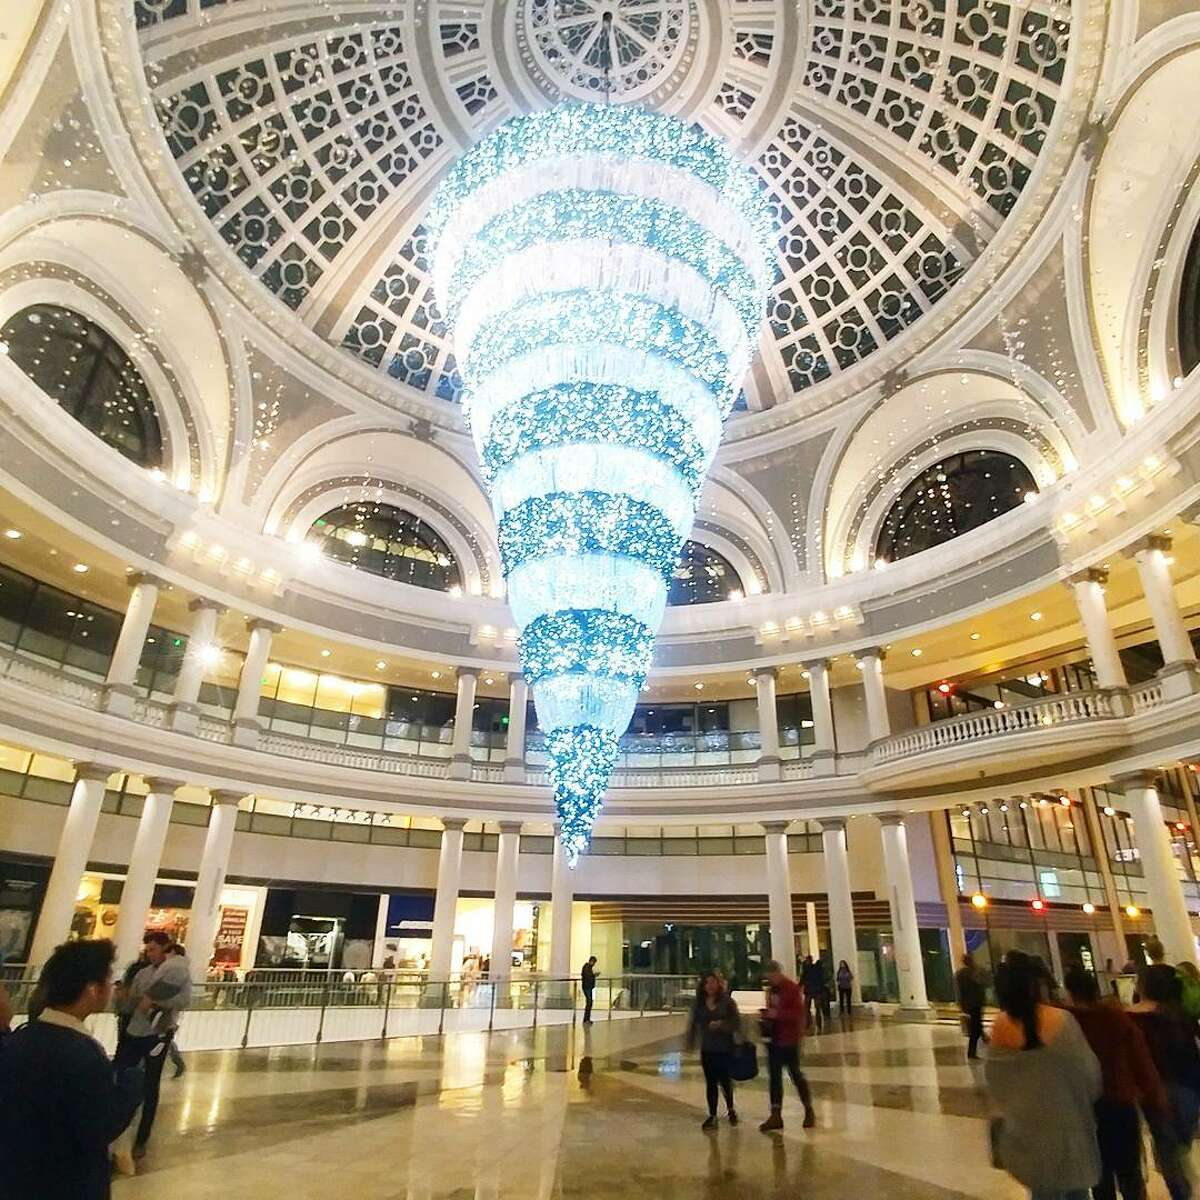 What Fox News has to say about upside-down Christmas trees like the one at S.F.'s Westfield Mall